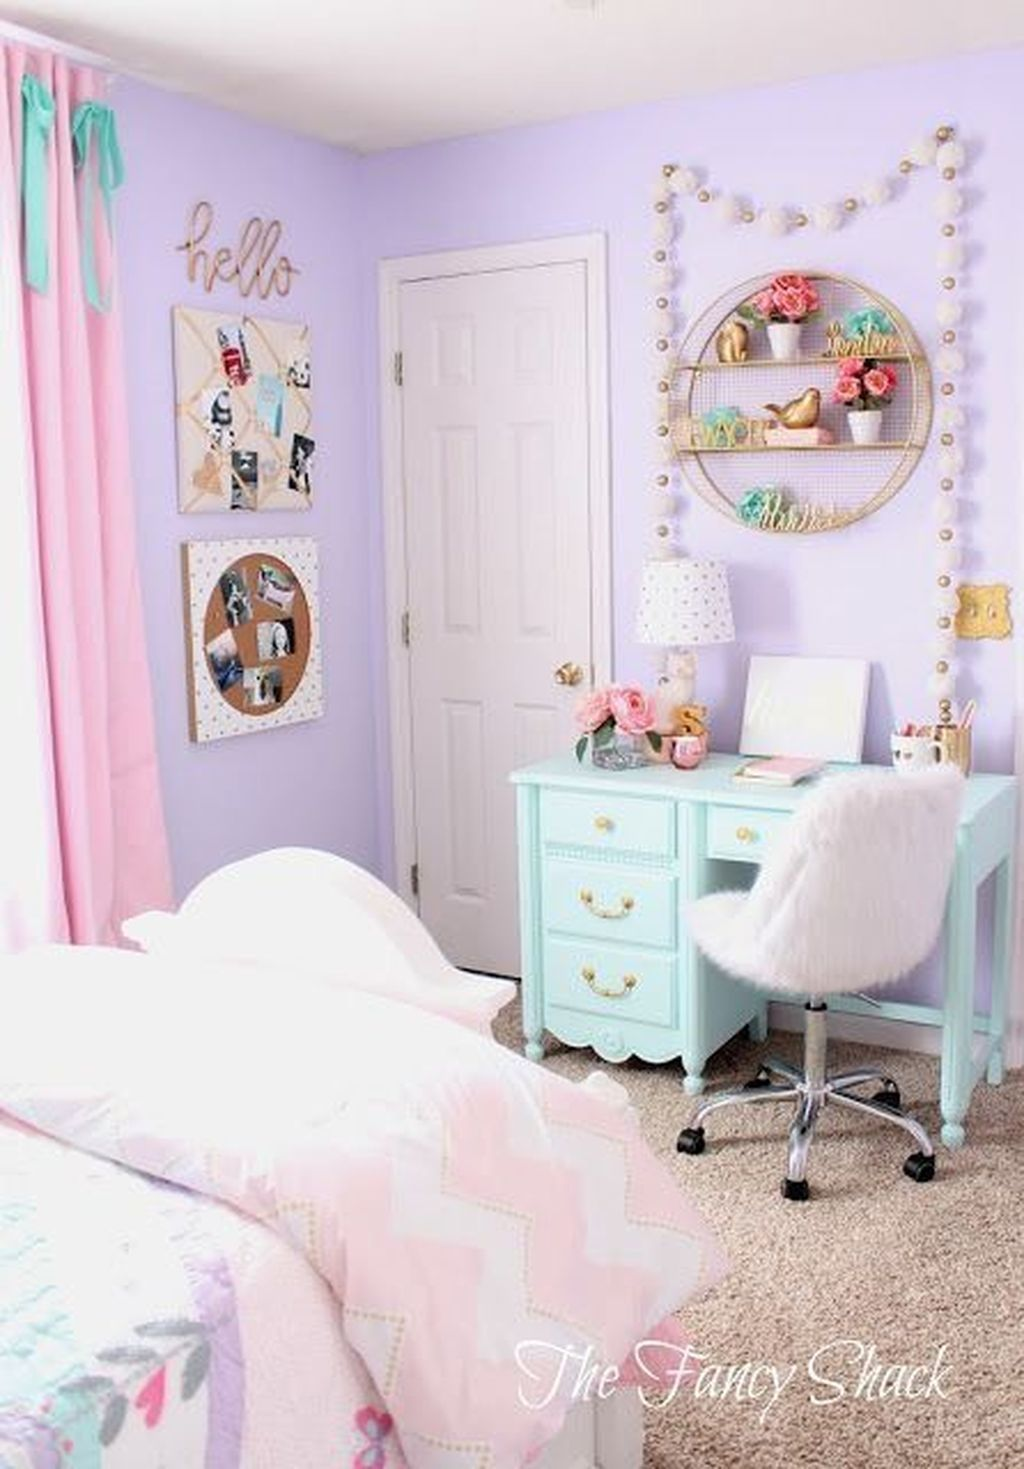 20+ Impressive Tween Girl Bedroom Decorating Ideas images